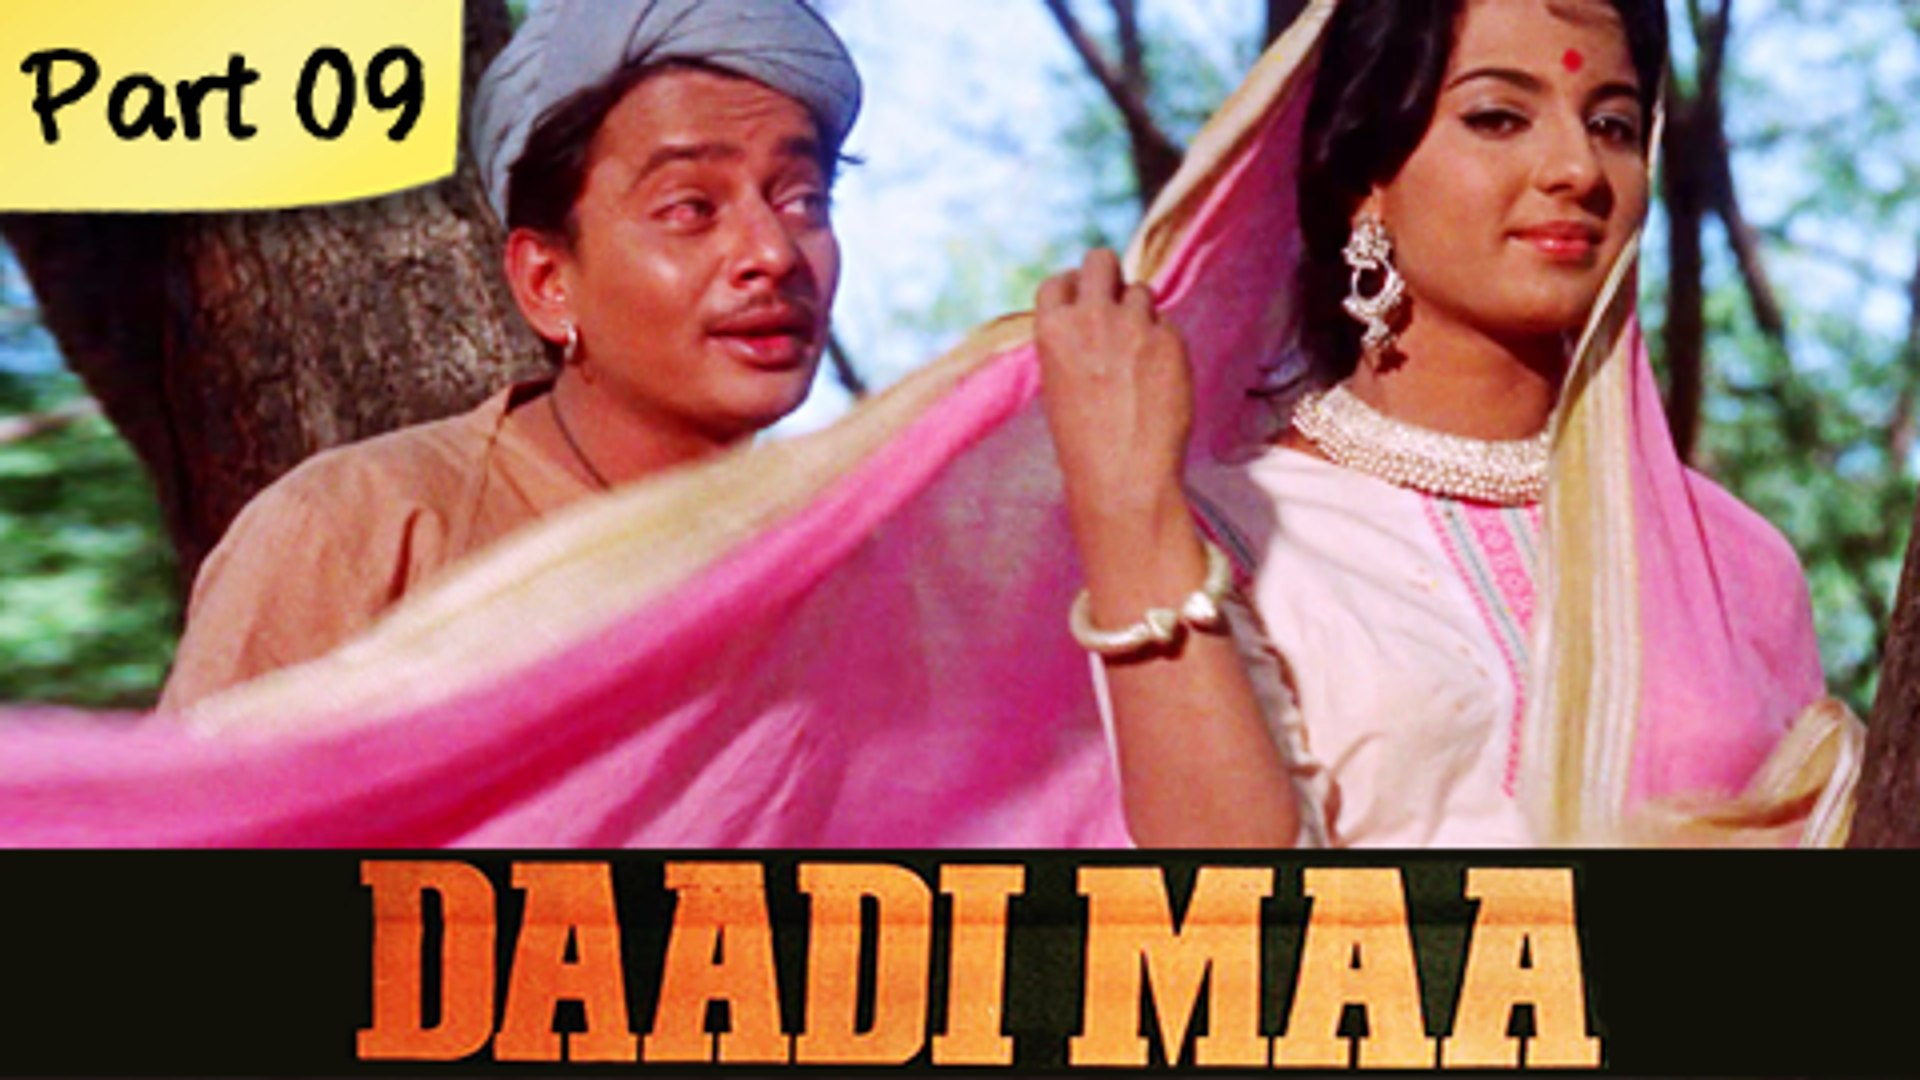 Daadi Maa - Part 09/14 - Super Hit Classic Bollywood Family Movie - Ashok Kumar, Mumtaz, Mehmood